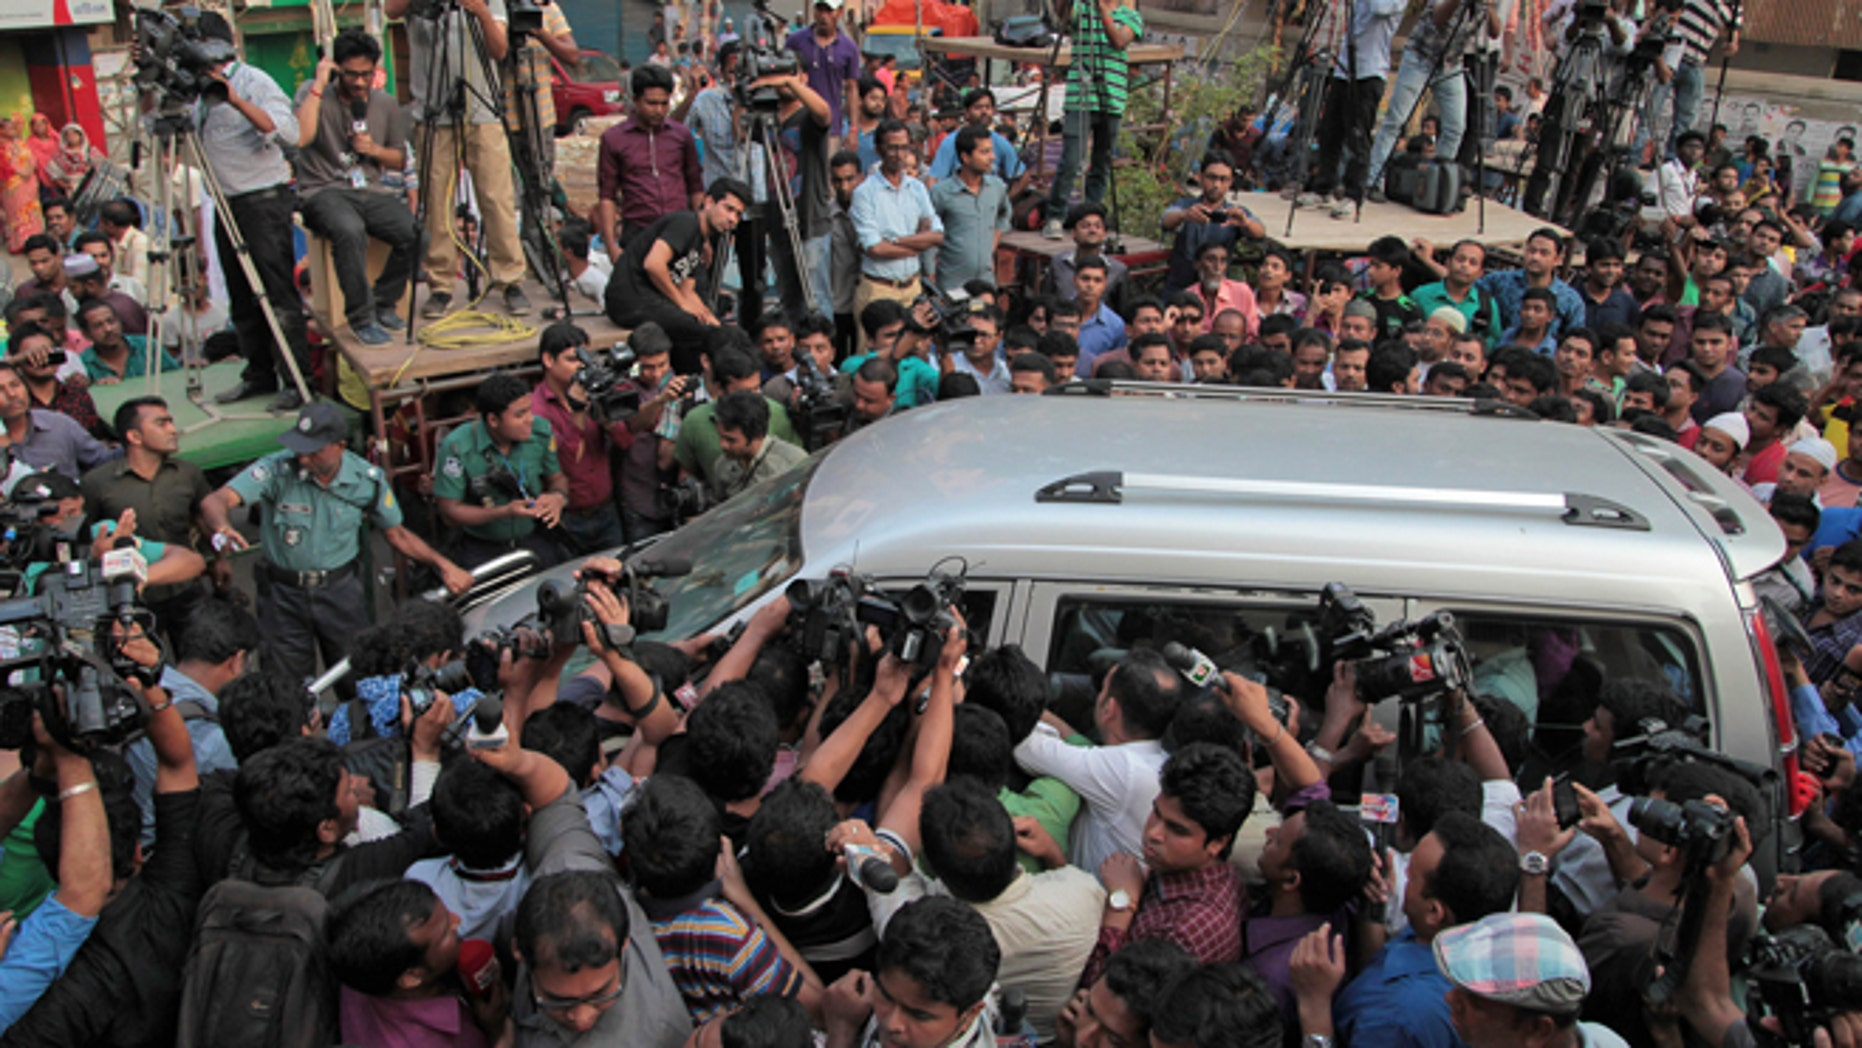 Apr. 11, 2015: Journalists surround the car carrying family members of Mohammad Qamaruzzaman, an assistant secretary general of Jamaat-e-Islami party, as they leave the Central Jail after meeting Qamaruzzaman in Dhaka, Bangladesh.(AP)